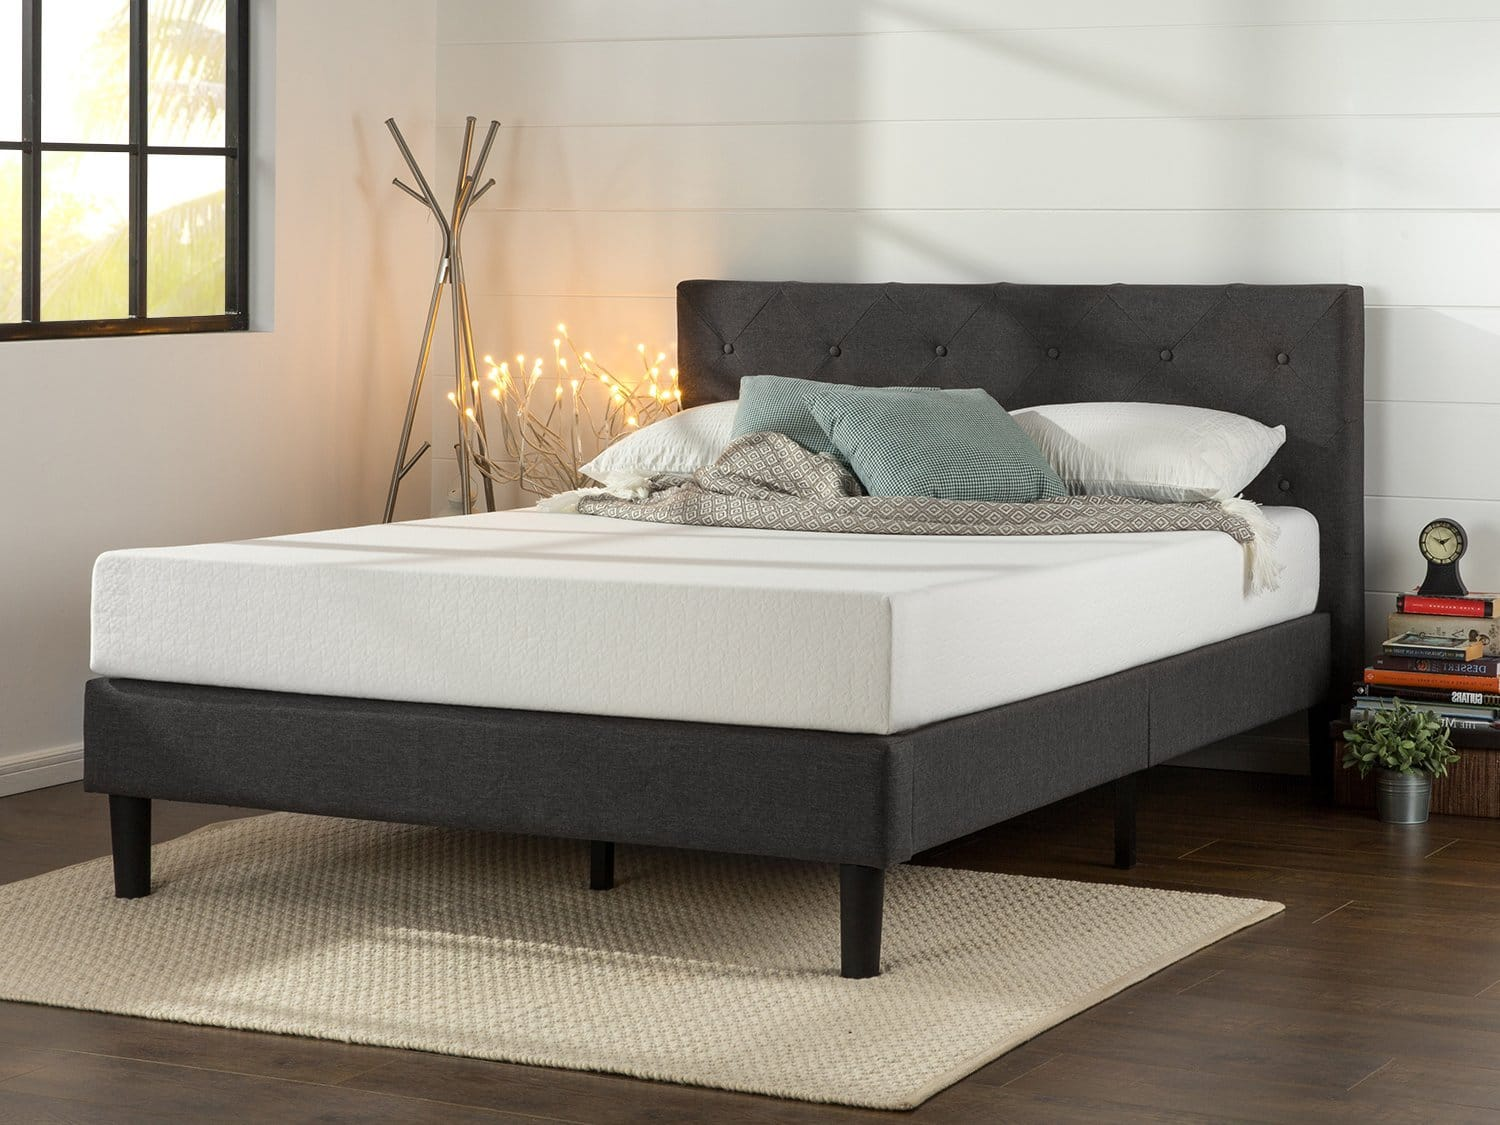 Unique Zinus Upholstered Diamond Stitched Platform Bed Queen Slickdeals net